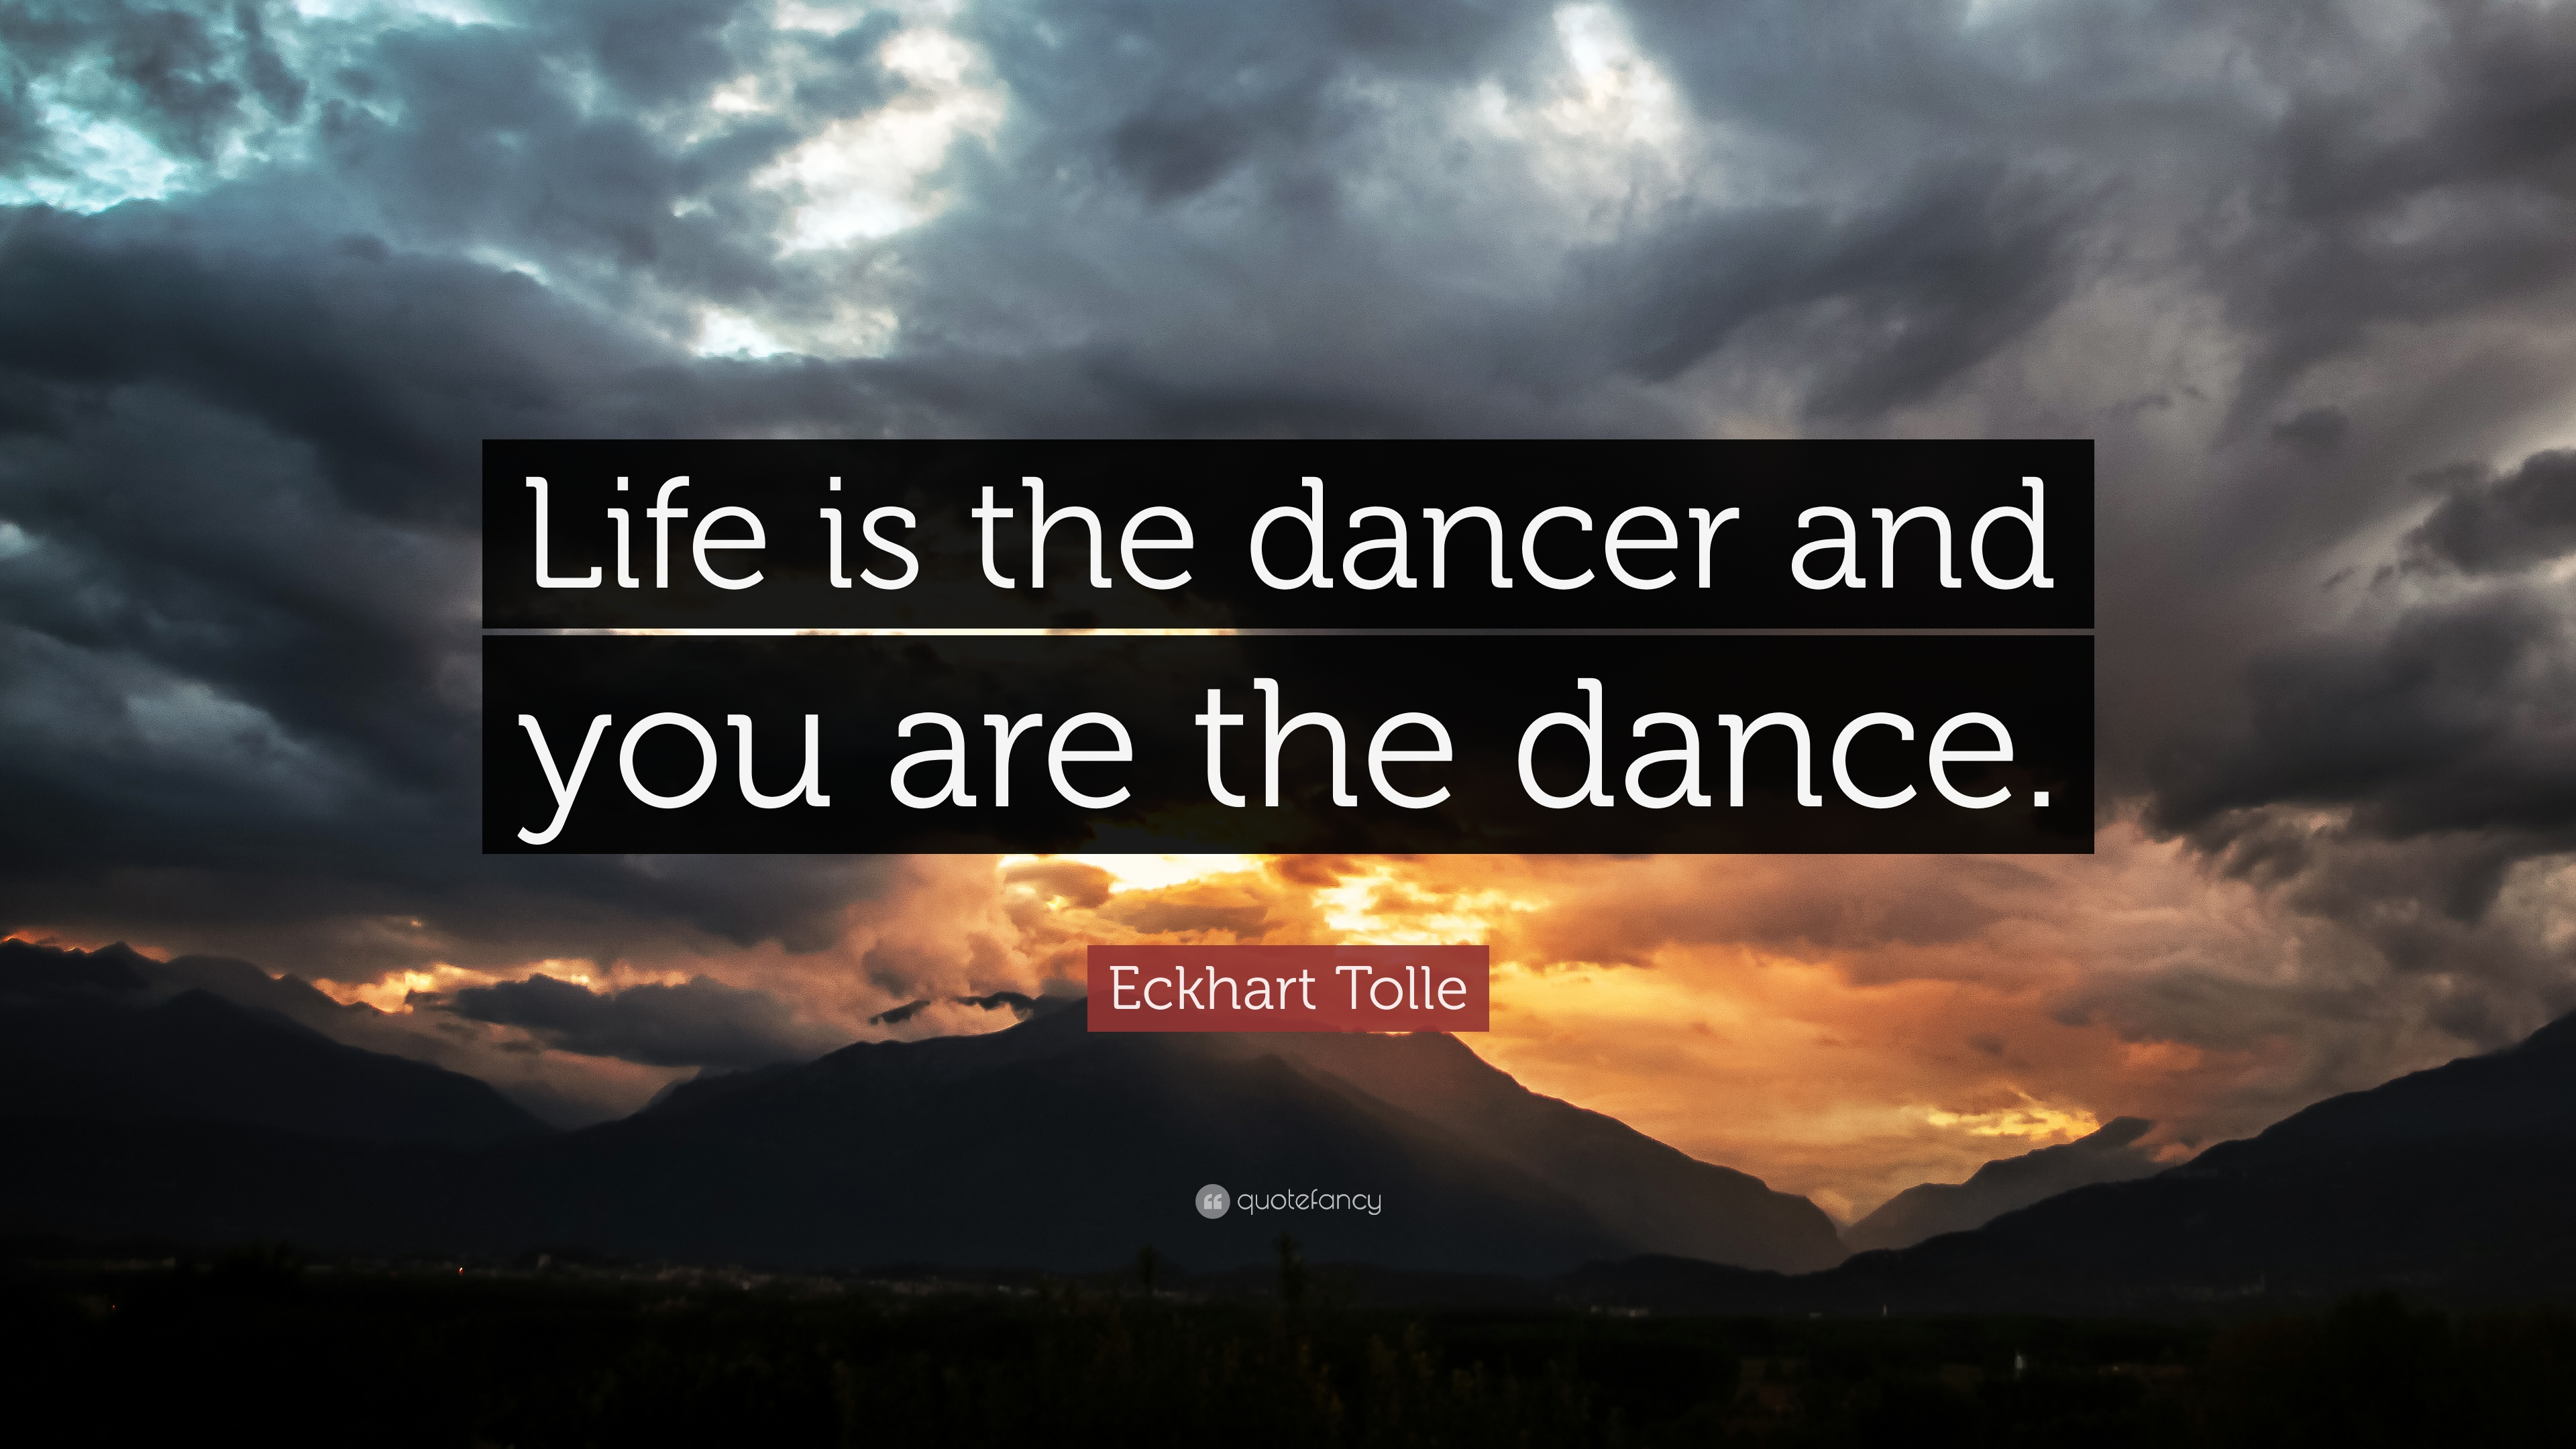 Eckhart Tolle Quote Ldquo Life Is The Dancer And You Are